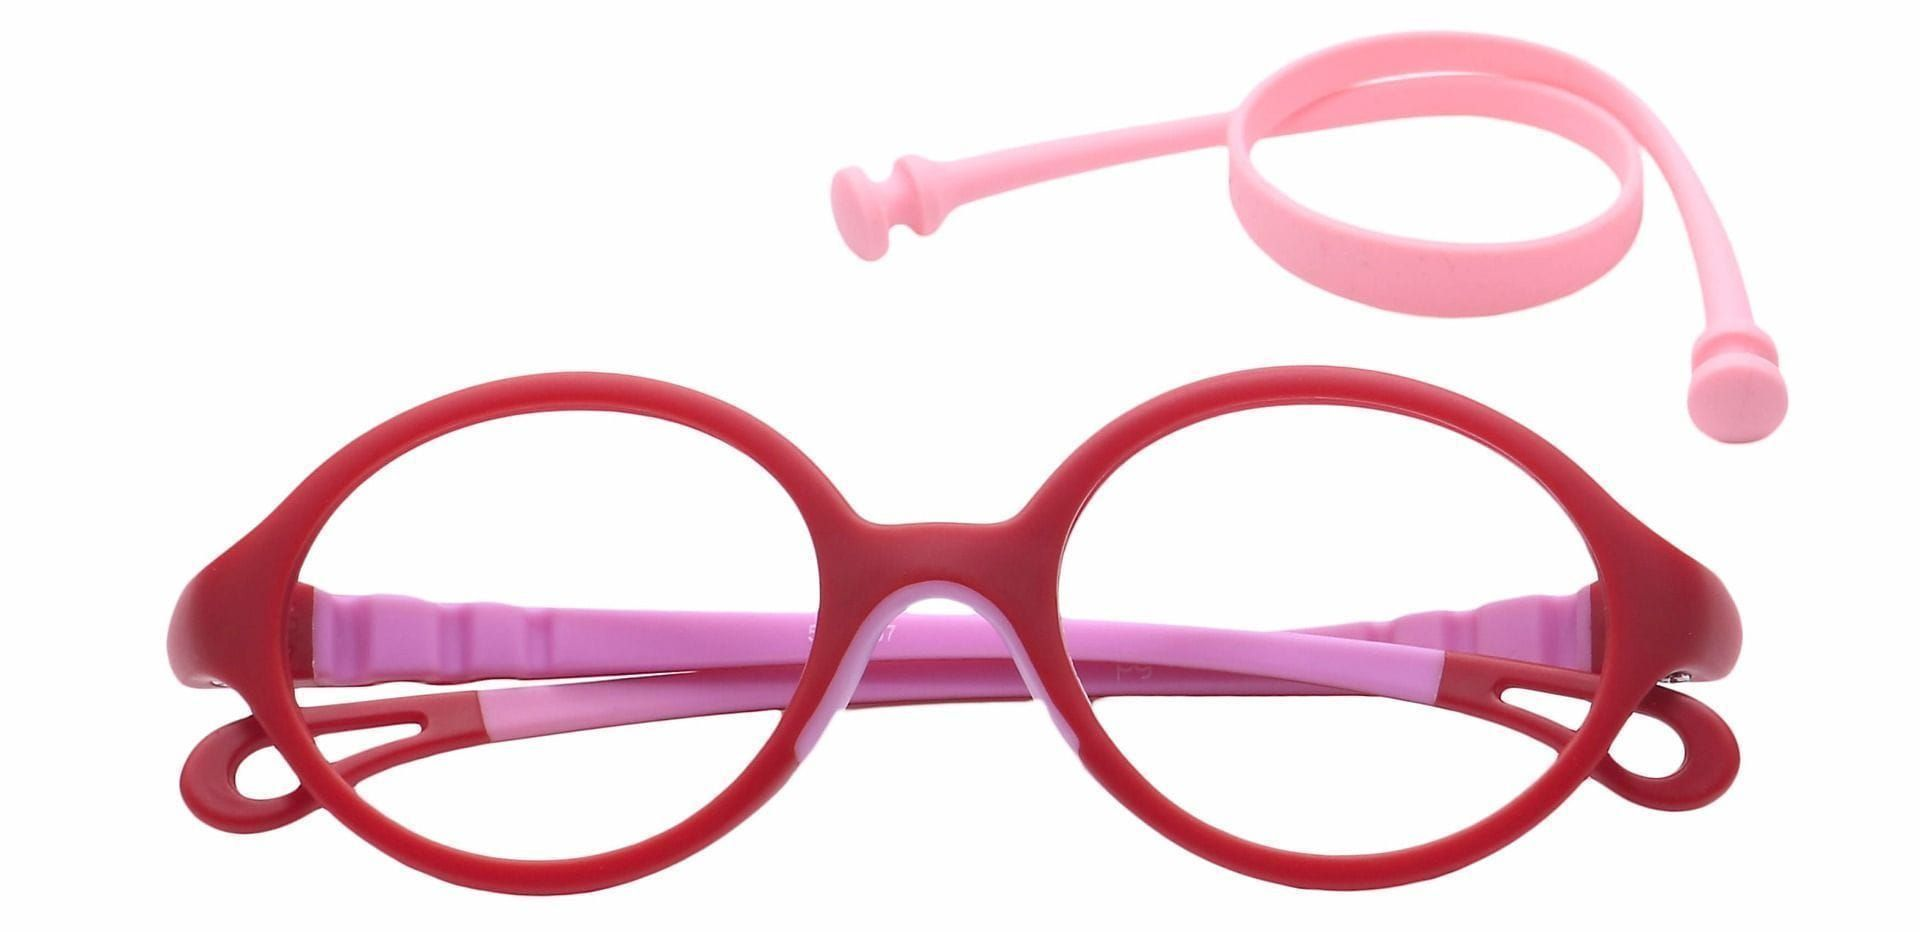 Whimsy Oval Eyeglasses Frame - Red